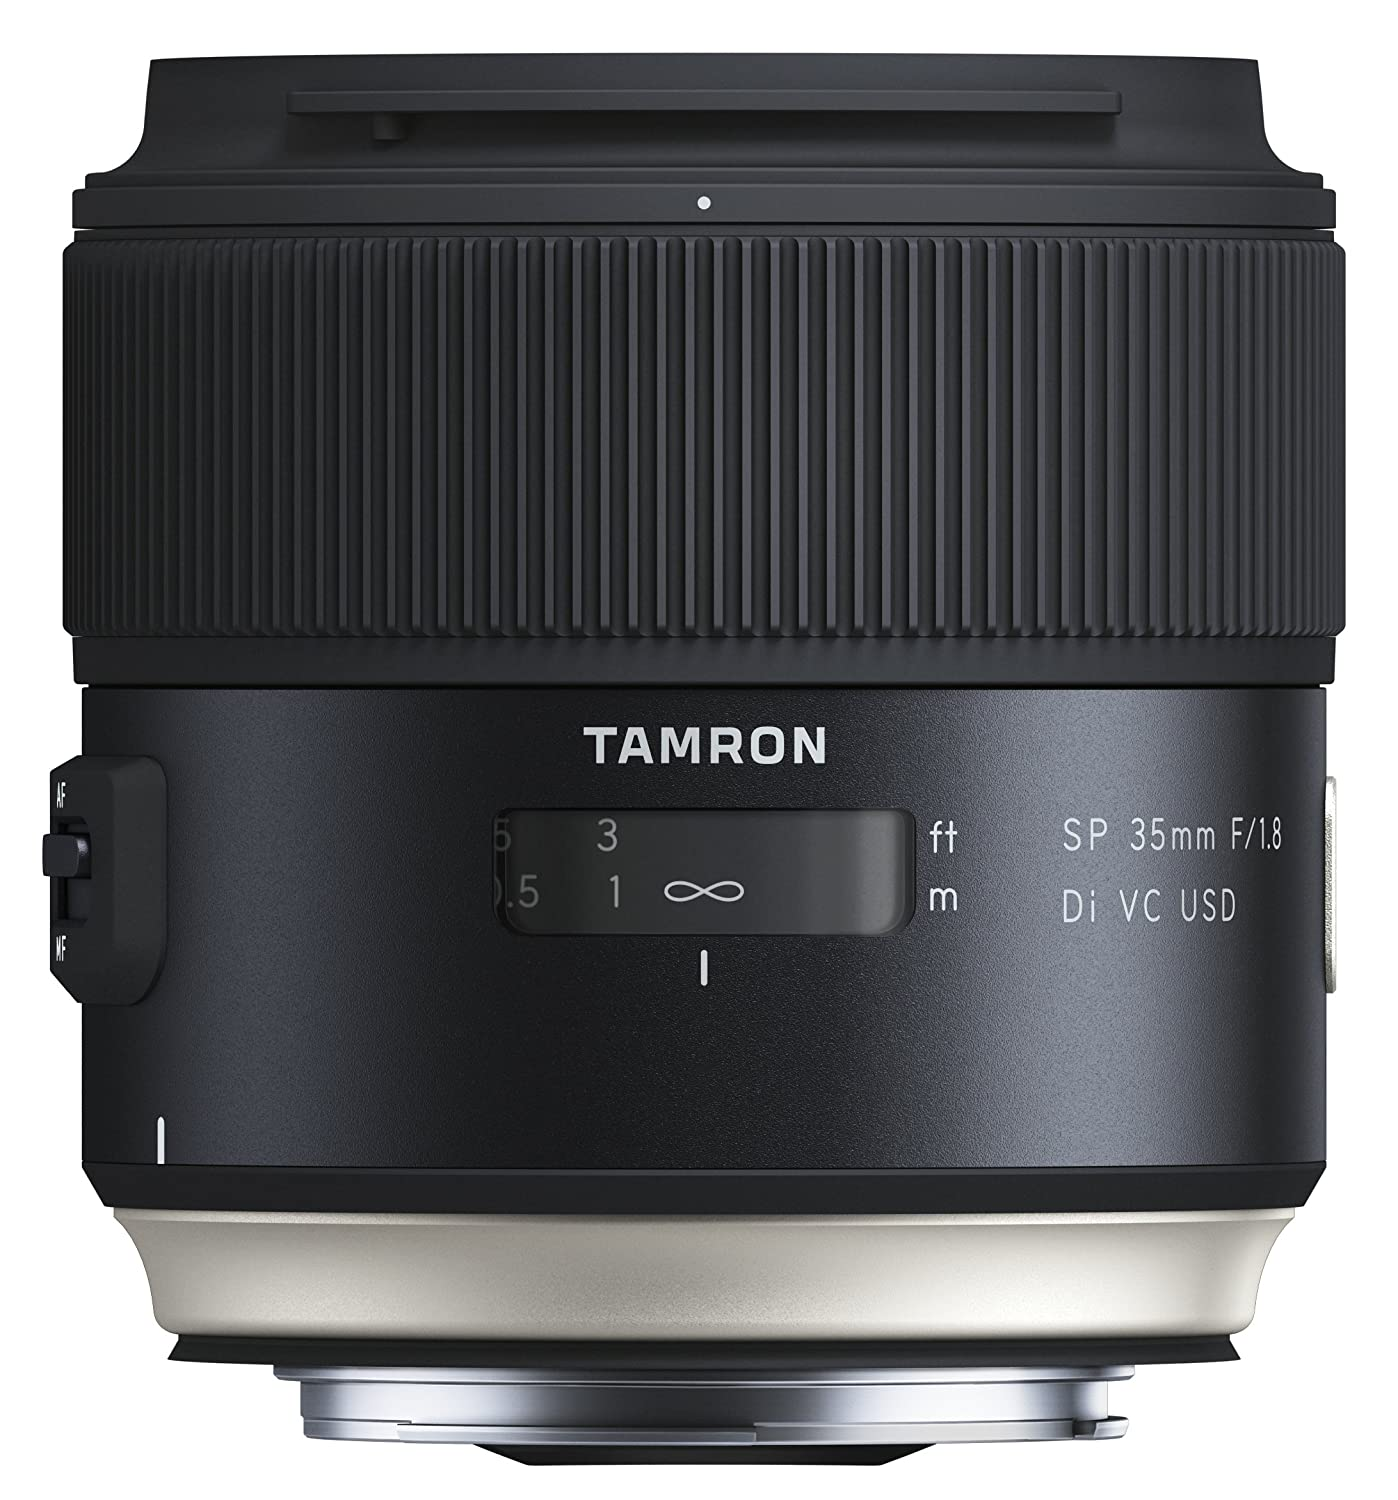 TAMRON SP 35mm F/1.8 Di VC USD Lens for Canon DSLR Camera